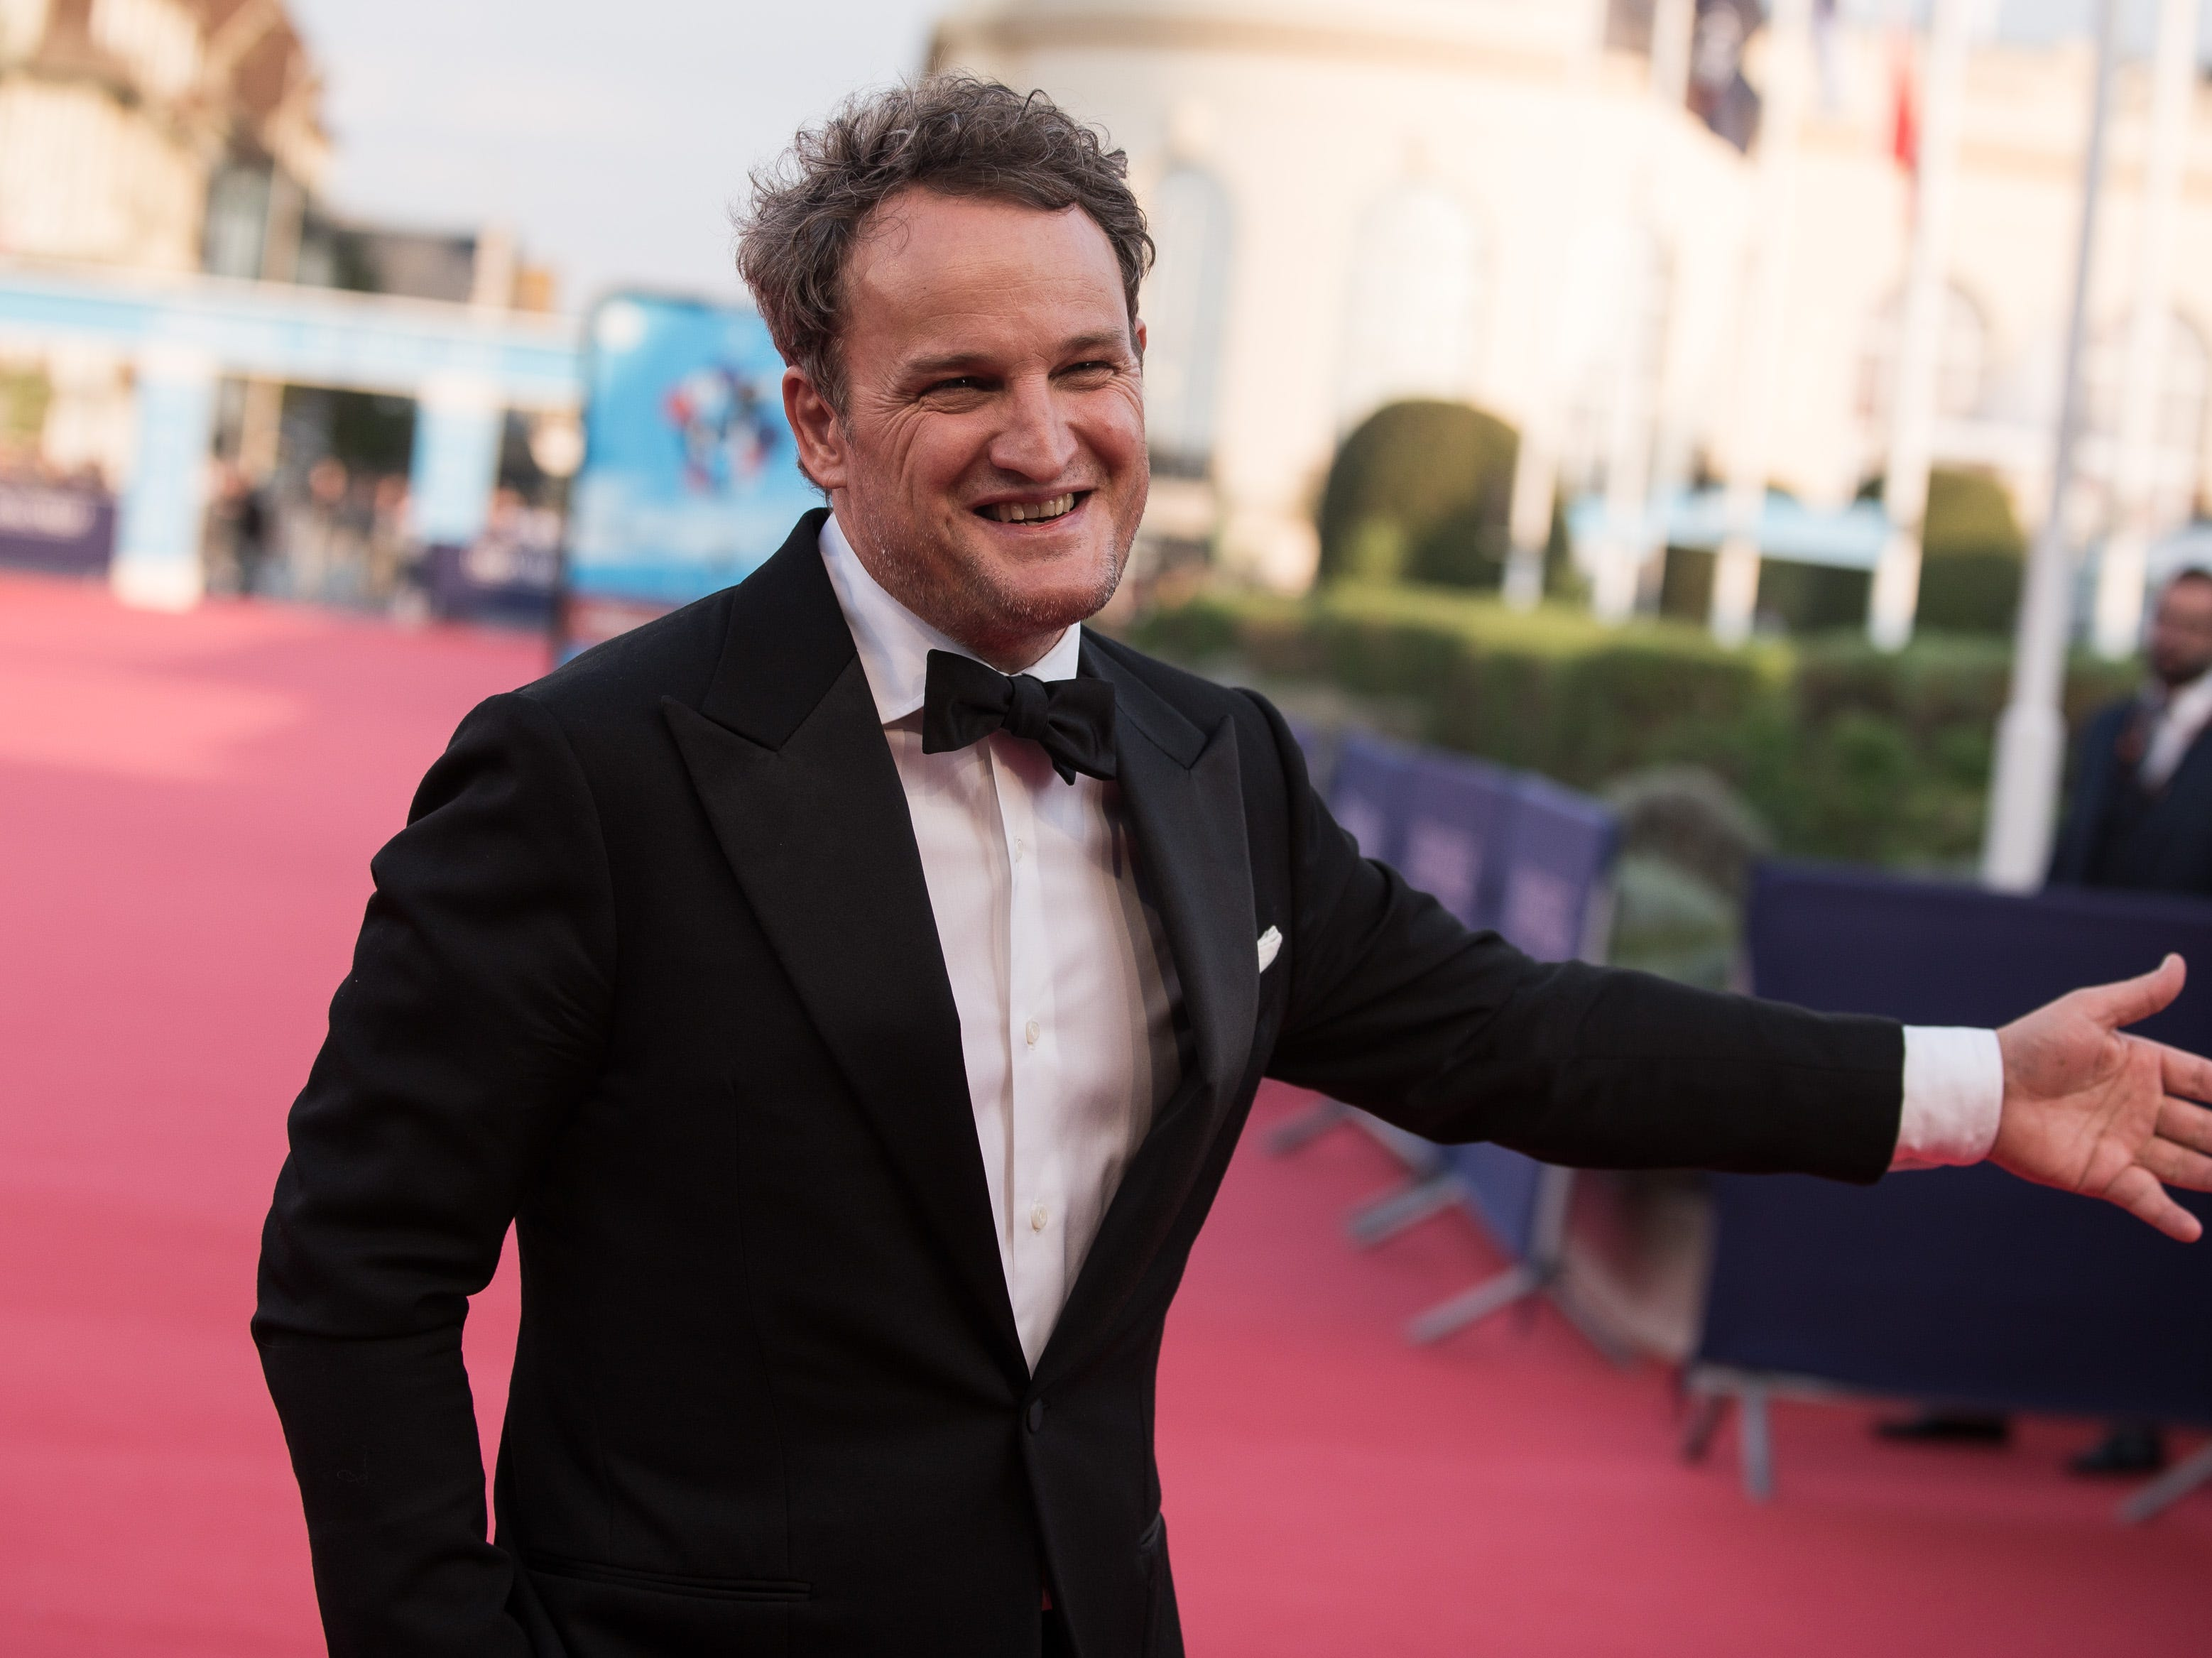 Jason Clarke on the red carpet before the opening ceremony of the 44th Deauville US Film Festival on Aug. 31, 2018.